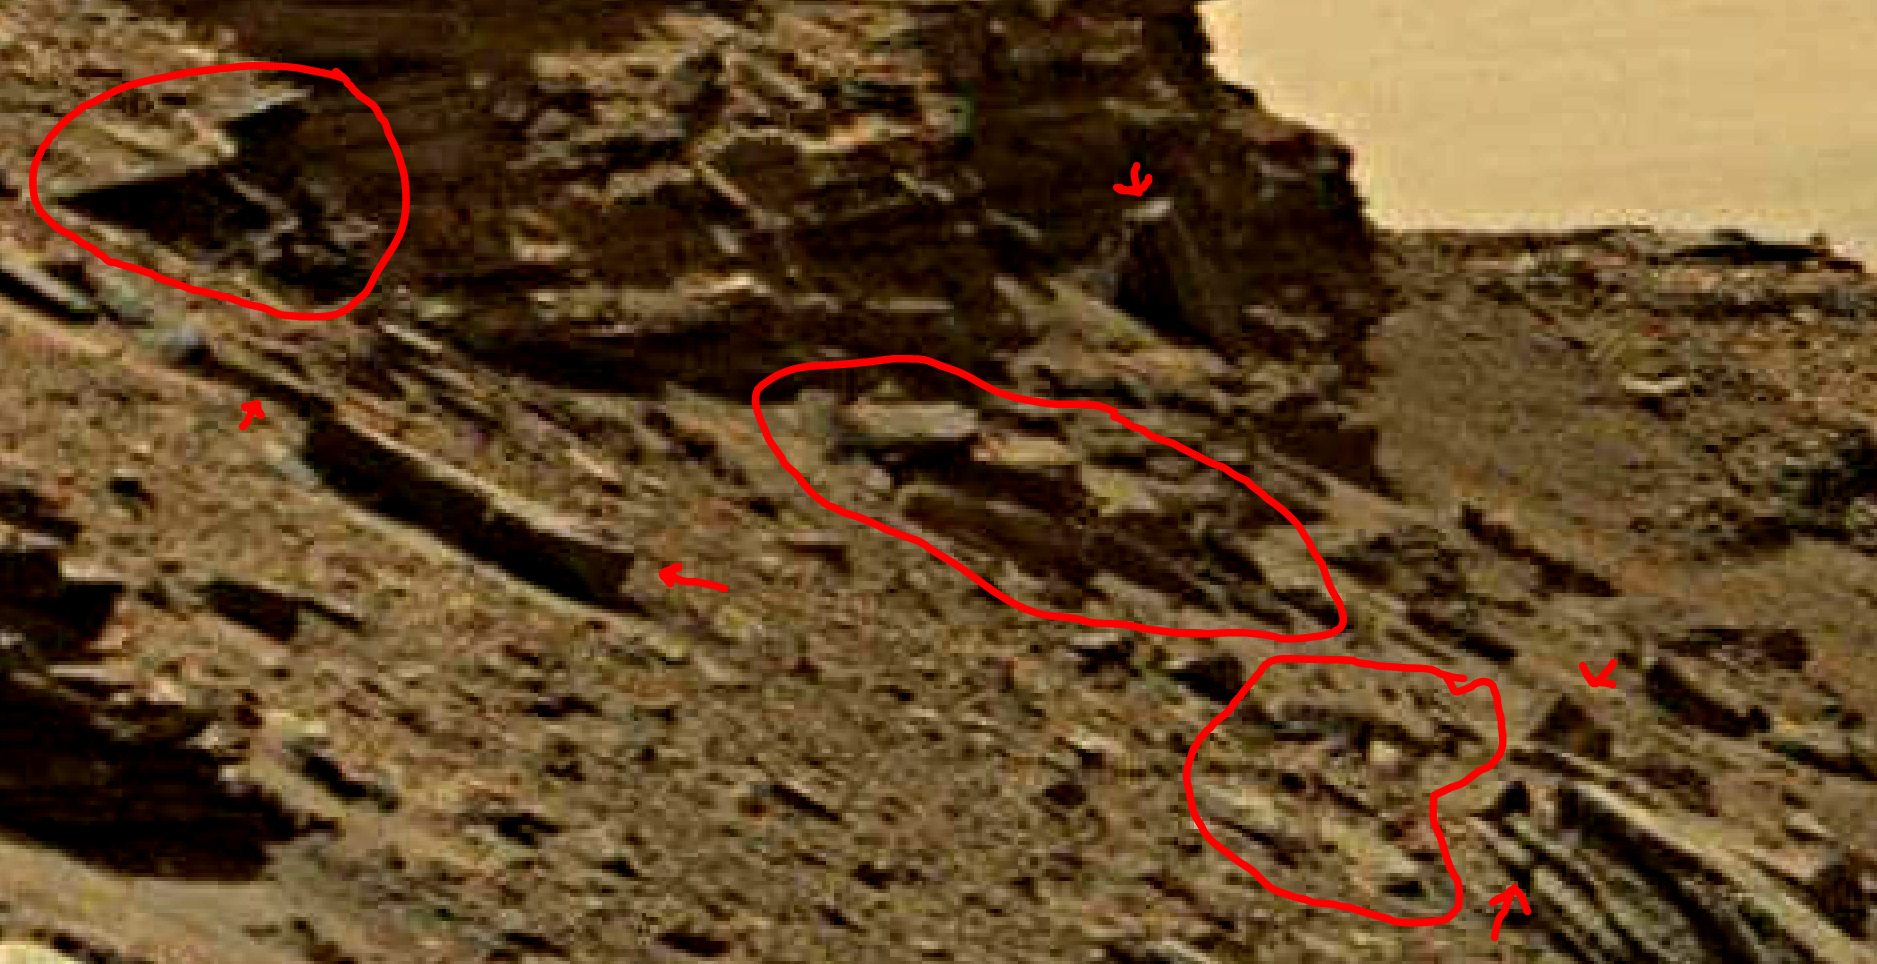 mars sol 1434 anomaly artifacts 3a was life on mars